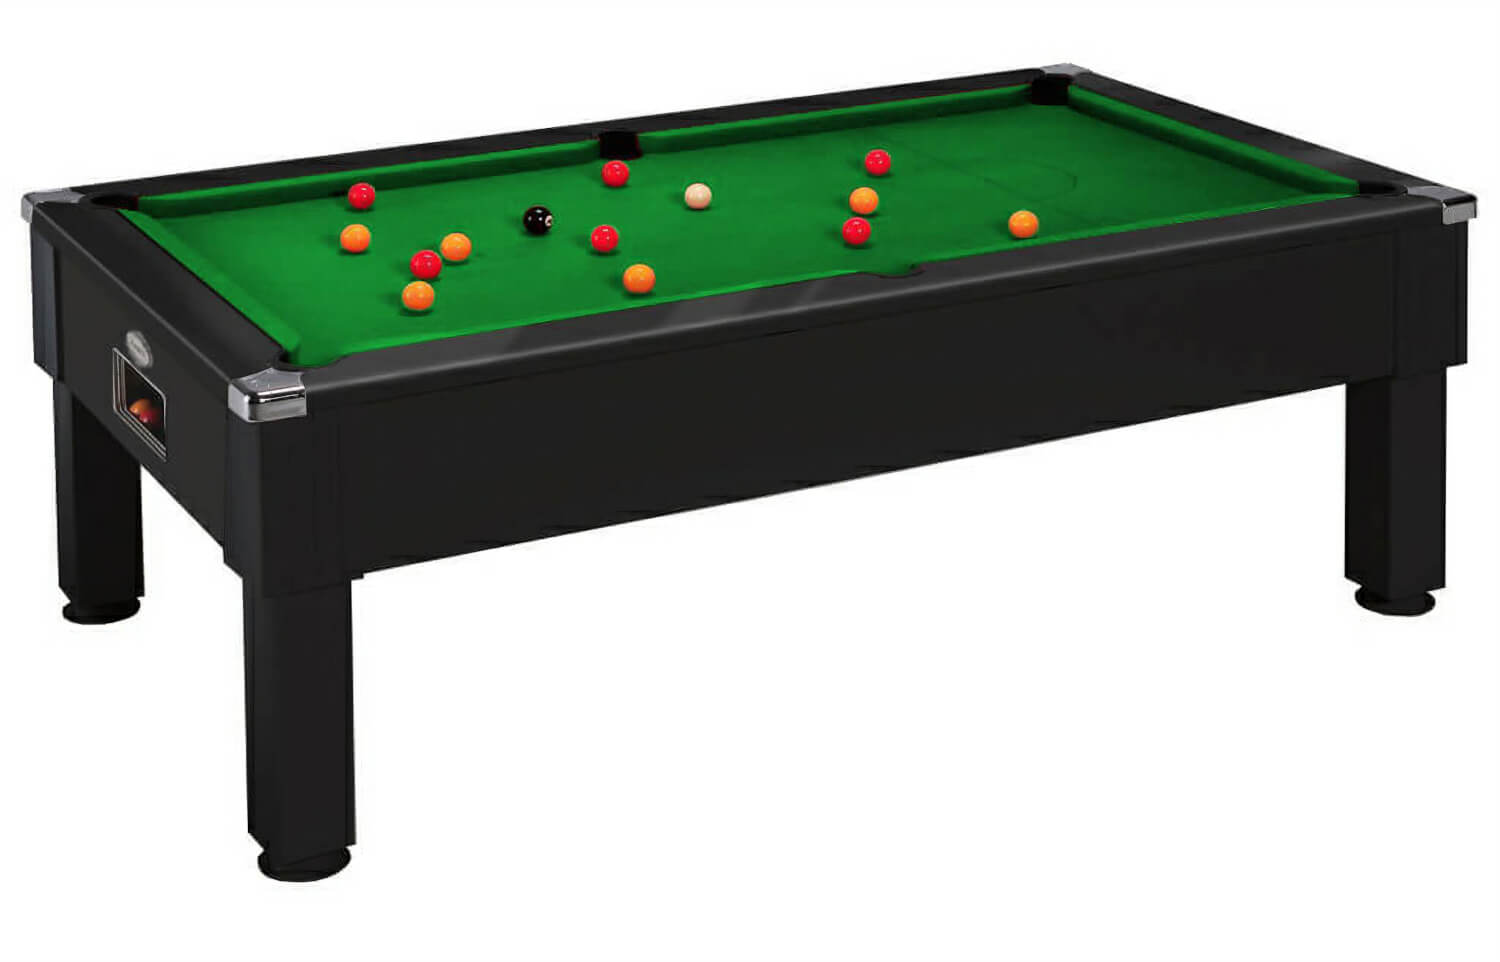 Emirates Pool Table - 6 ft, 7 ft, 8 ft : Liberty Games